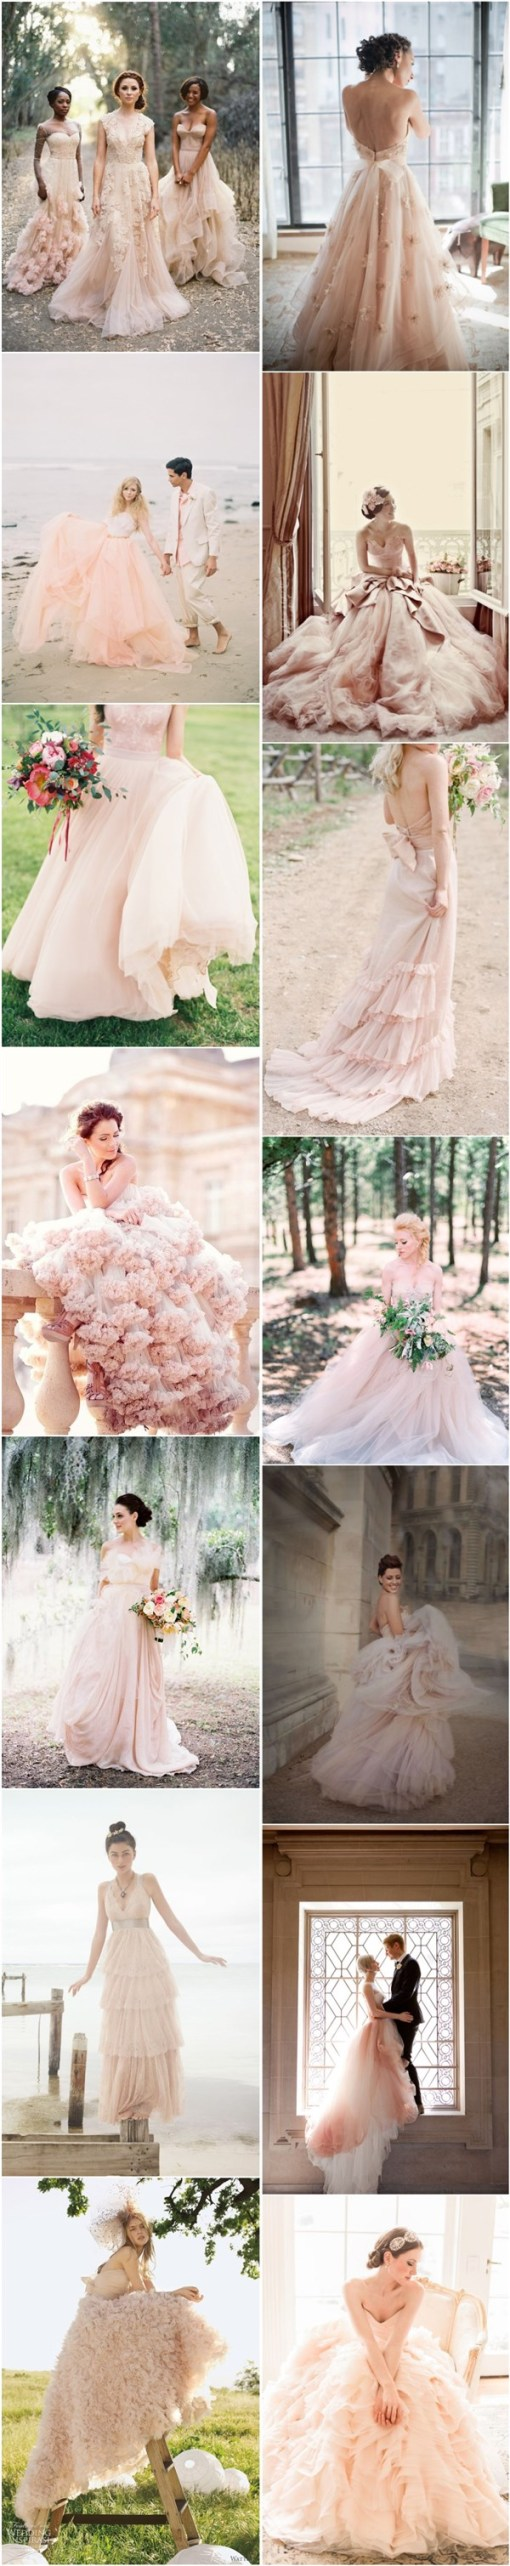 blush-pink-peach-wedding-dresses